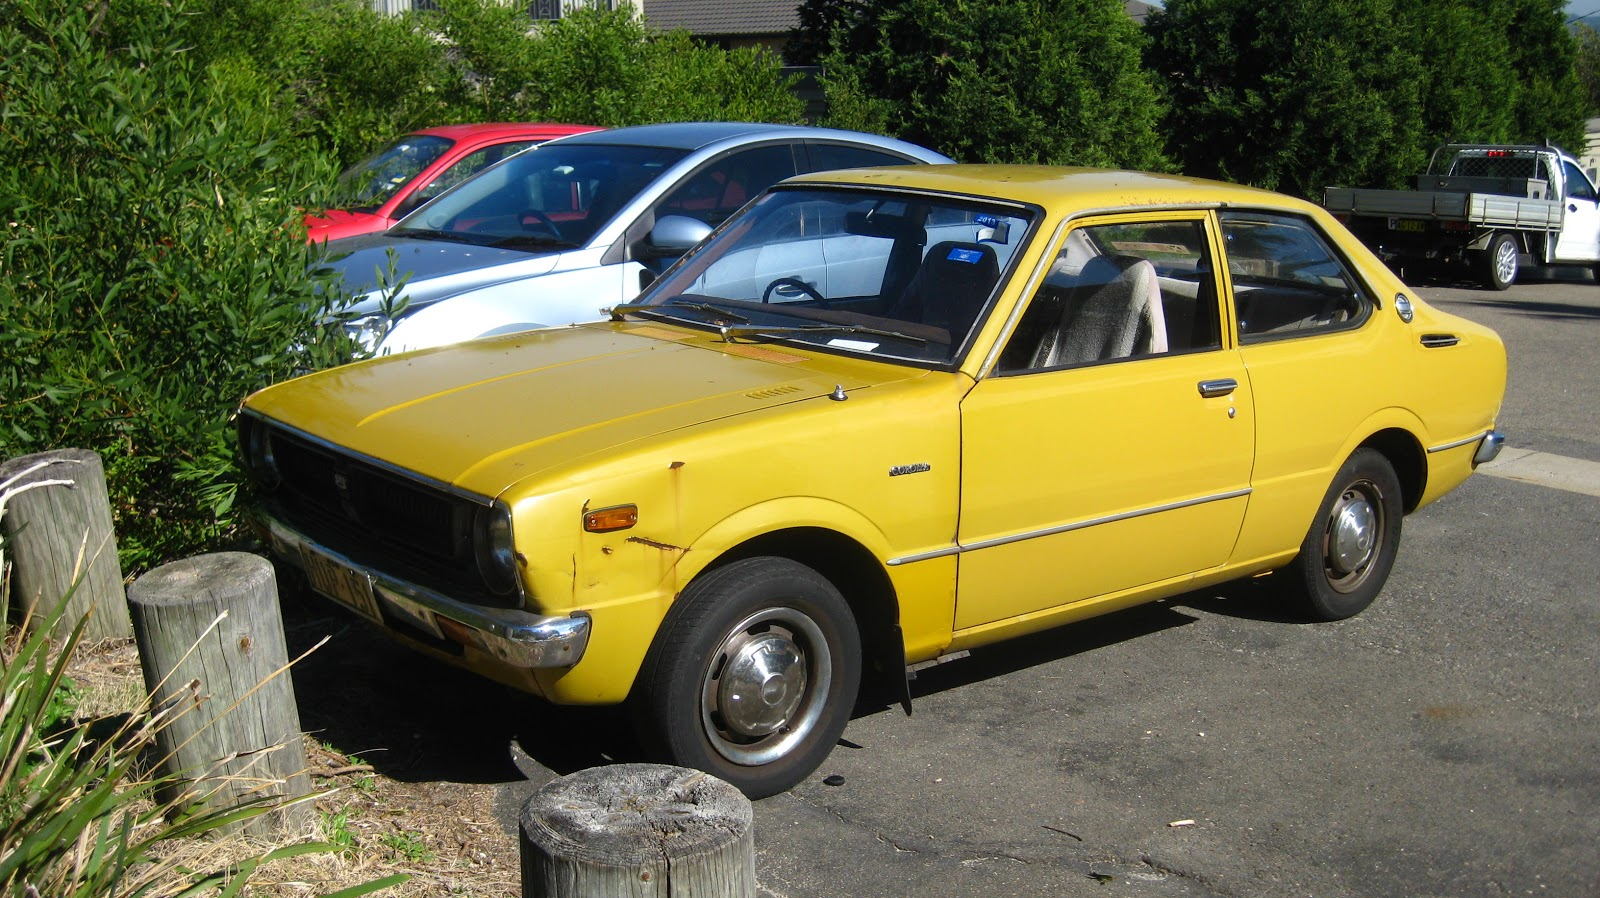 Aussie Old Parked Cars: 1976 Toyota Corolla 2-door Sedan (KE30)